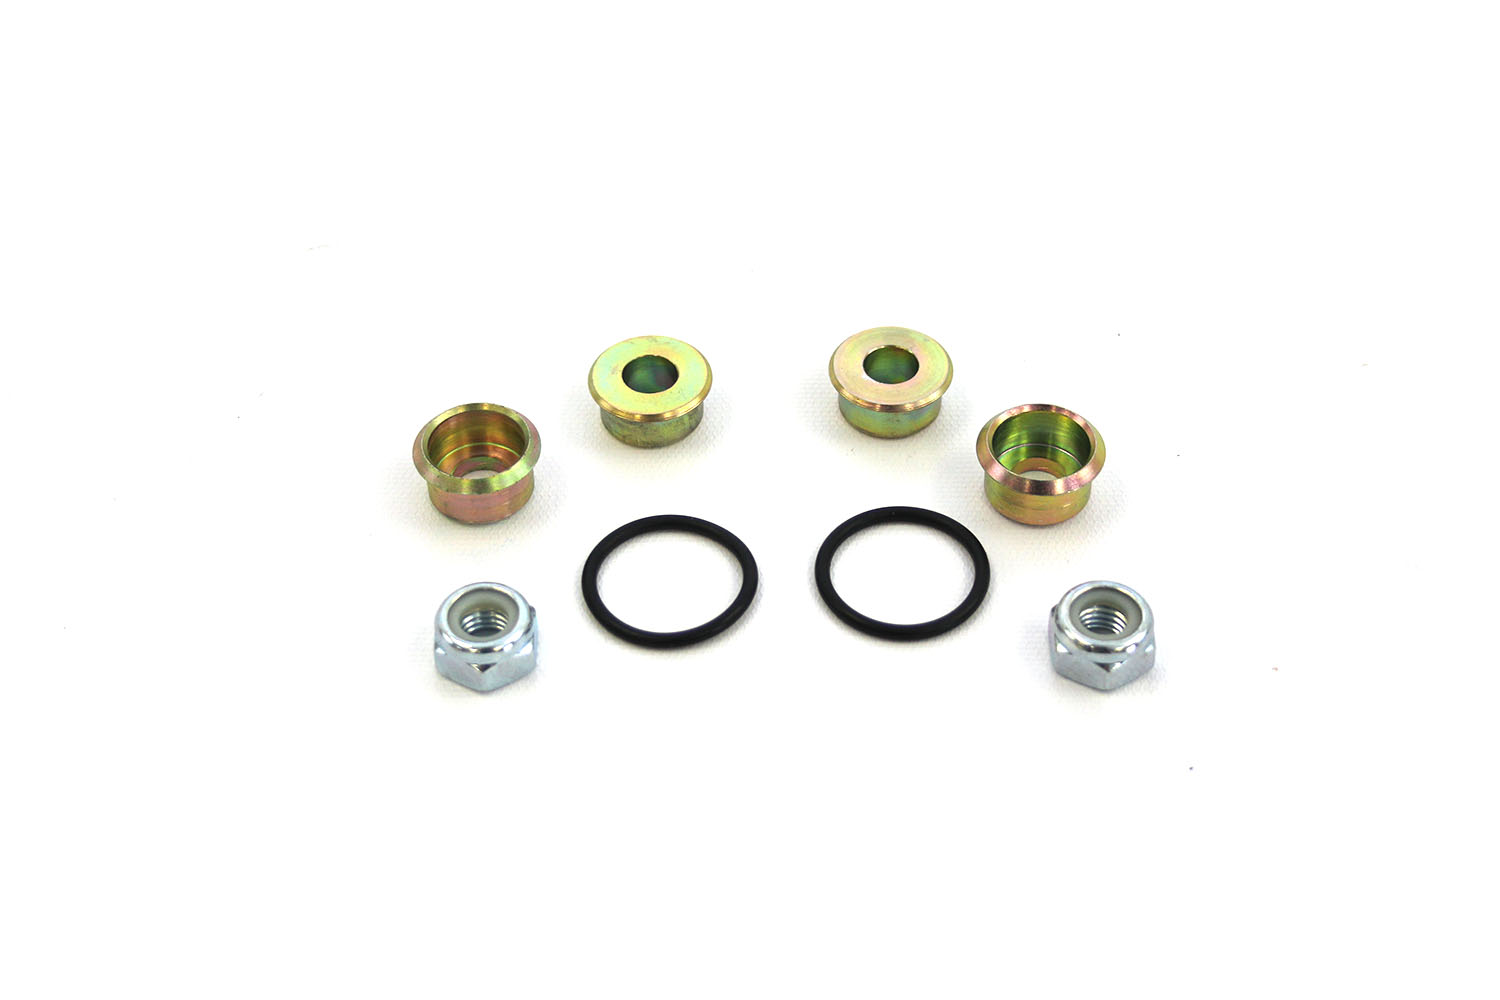 Steeda S550 Mustang 12mm Spacer Kit for Billet Rear Shock Mounts All (2015-2021)